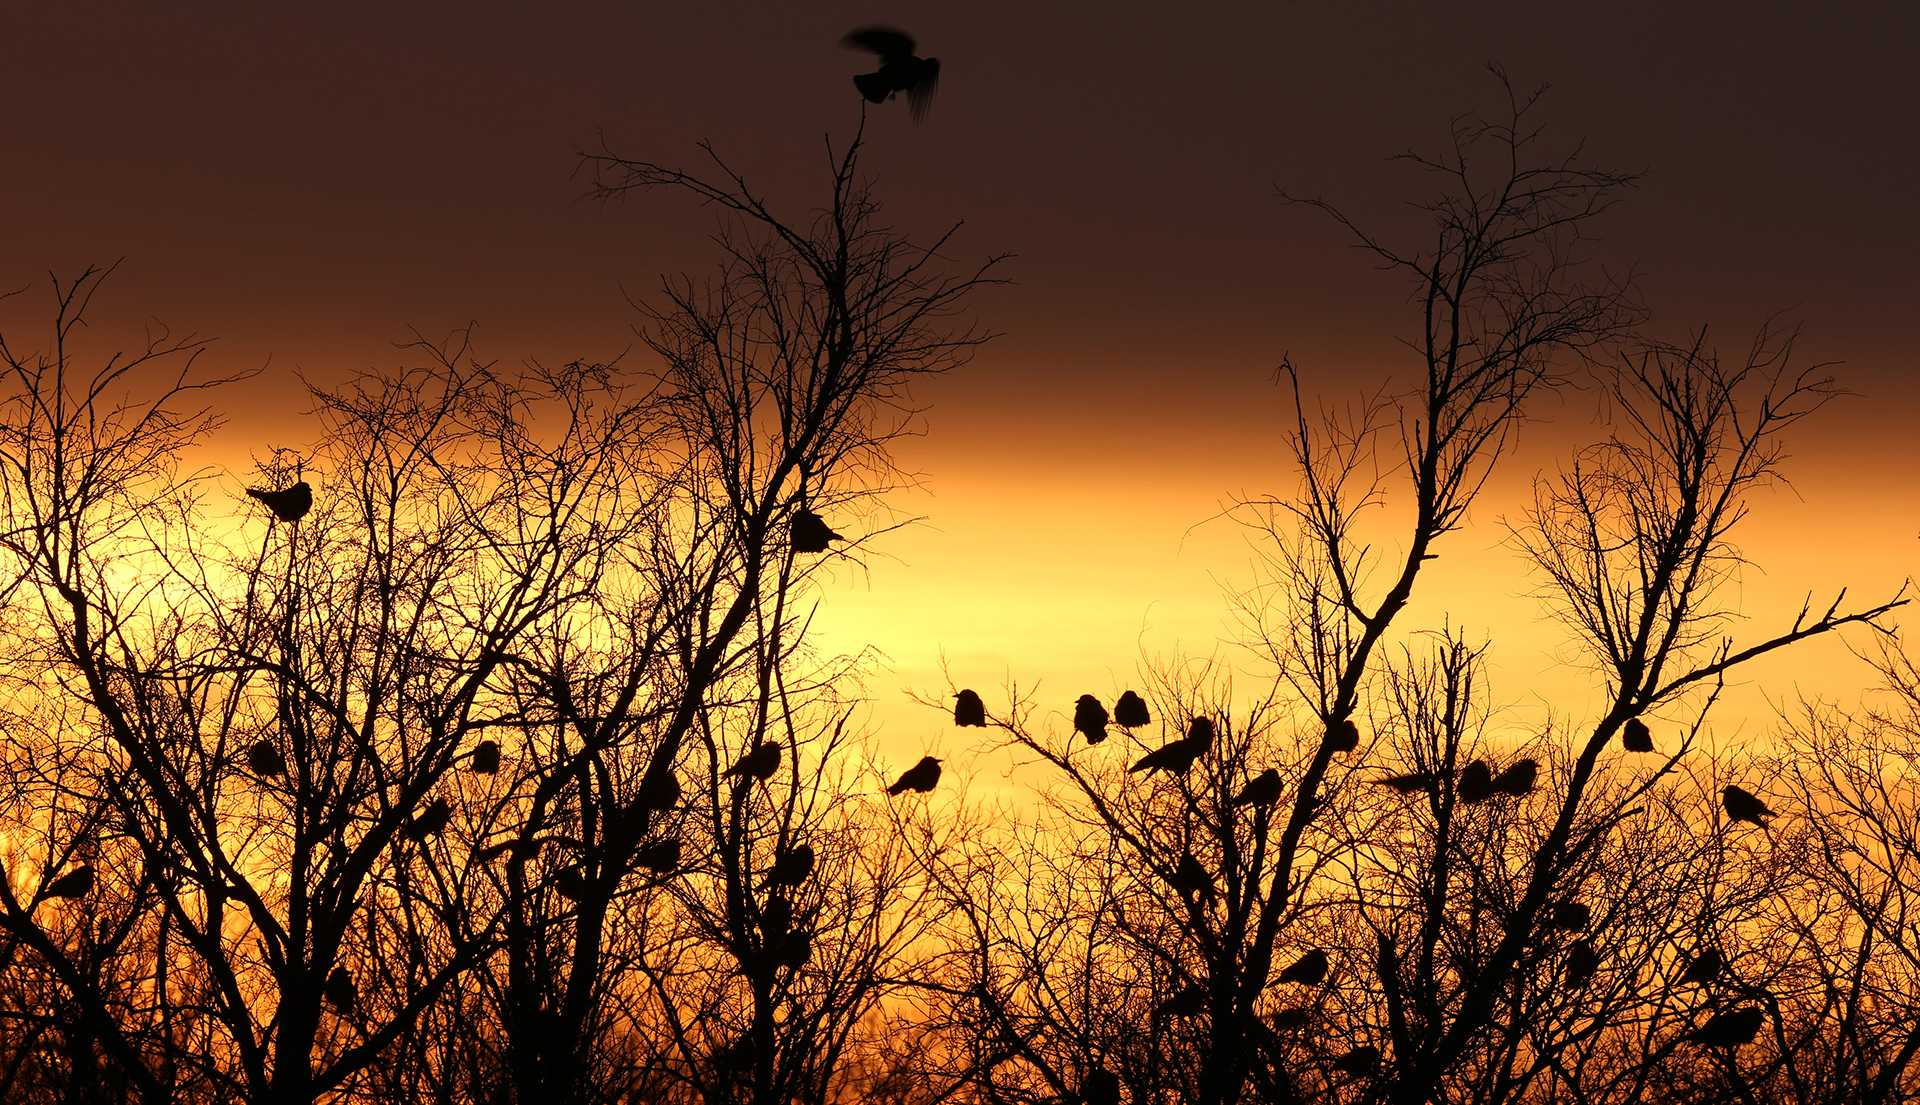 Crows flock along the Vermillion River in Danville, Illinois, January 24, 2013. (E. Jason Wambsgans/Chicago Tribune/MCT)